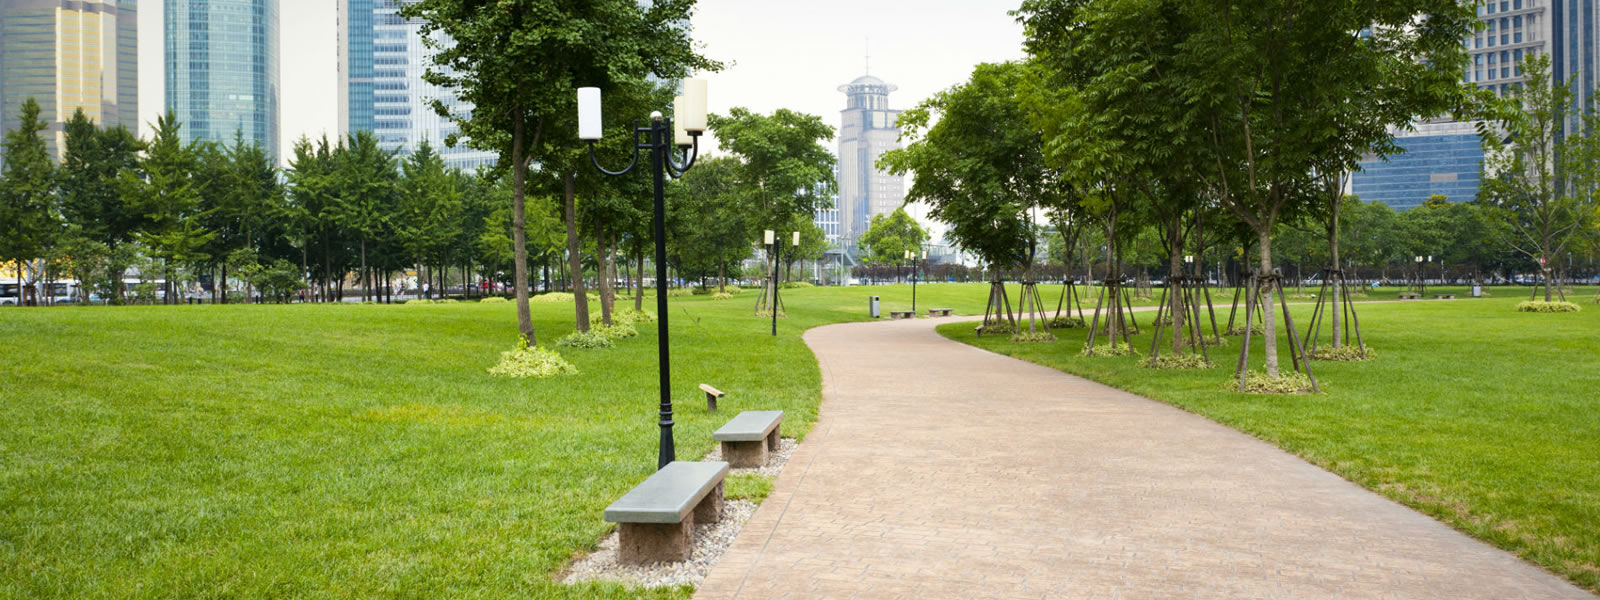 pathway with benches and green grass in a city park